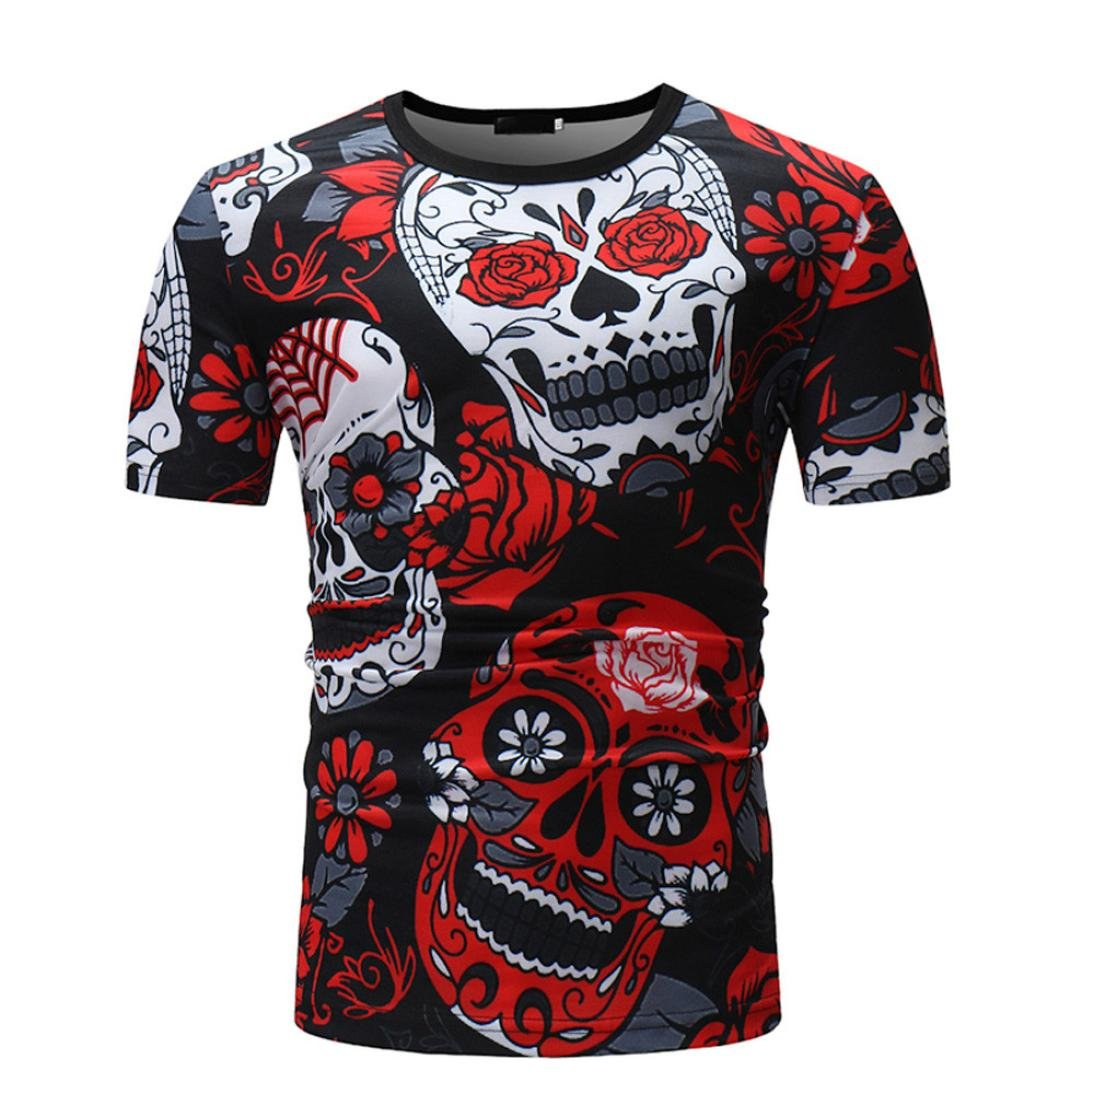 Zulmaliu Men Tee Shirt, Smiling Skull with Red Rose T-Shirt Cool Sportwear Outfit